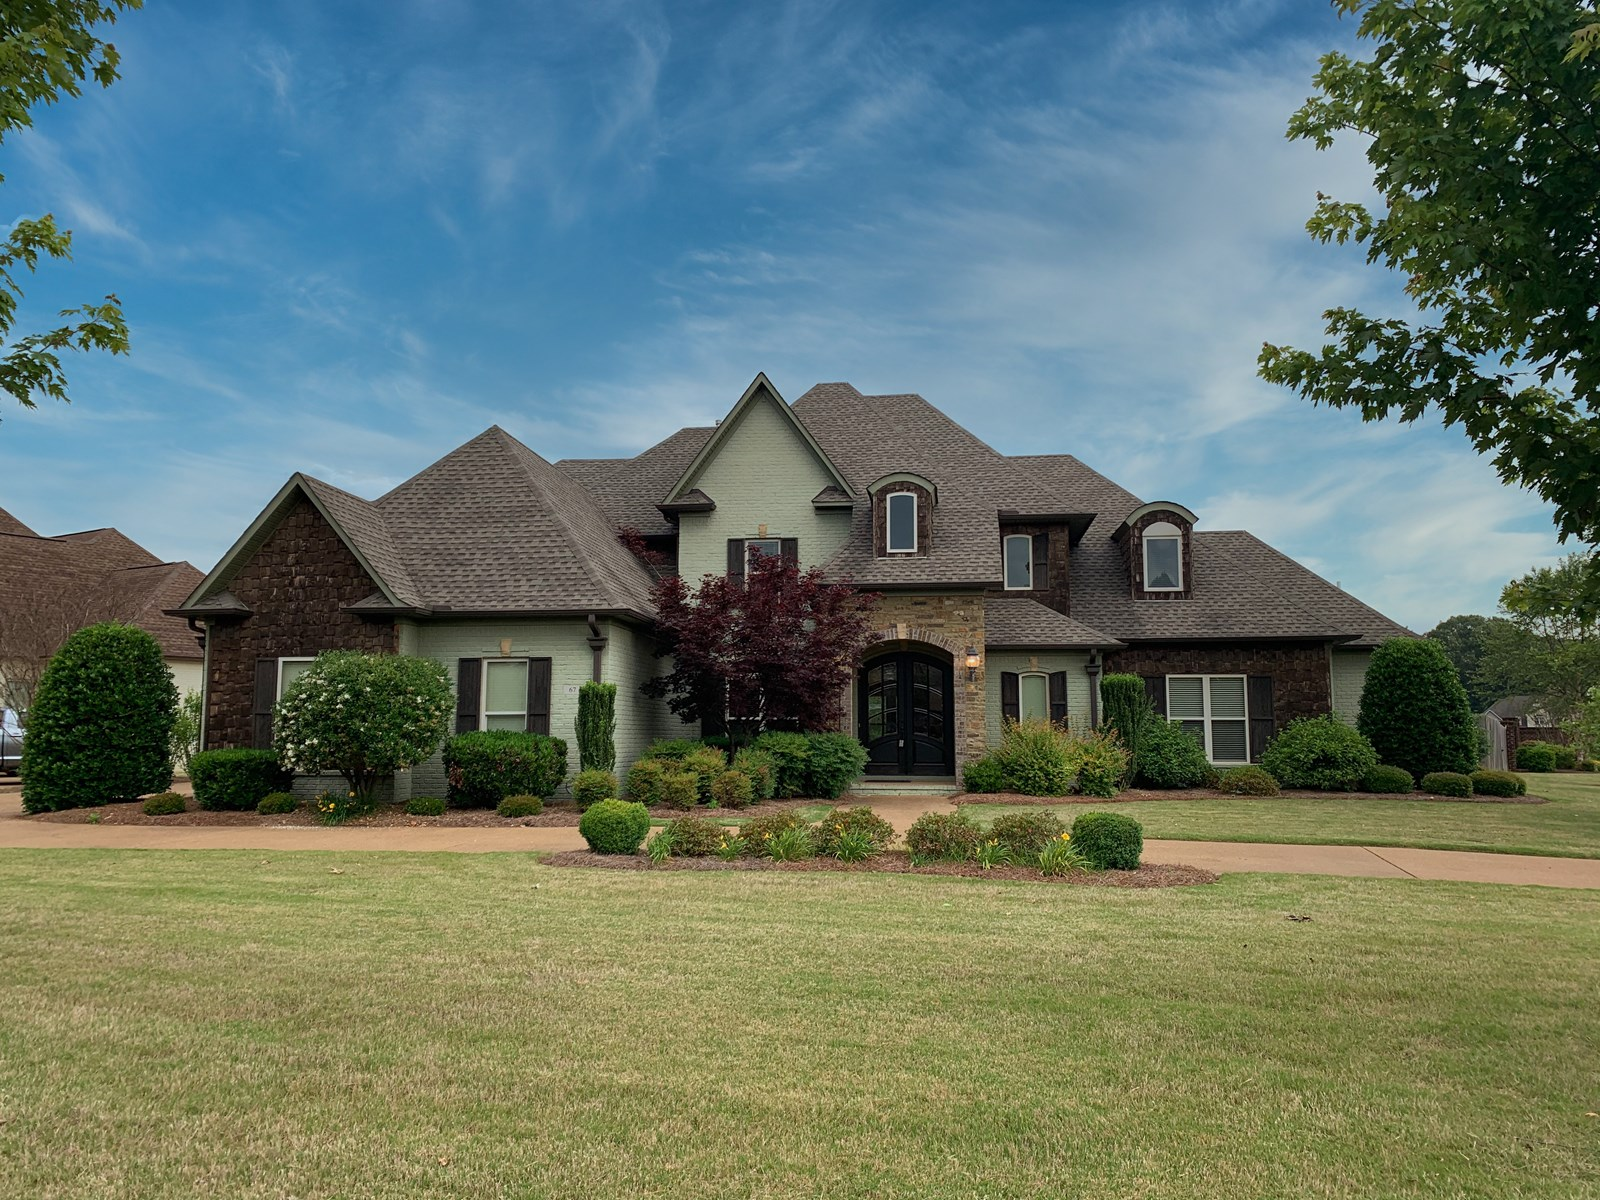 Custom Home with Pool for sale in Wyndchase in Jackson TN